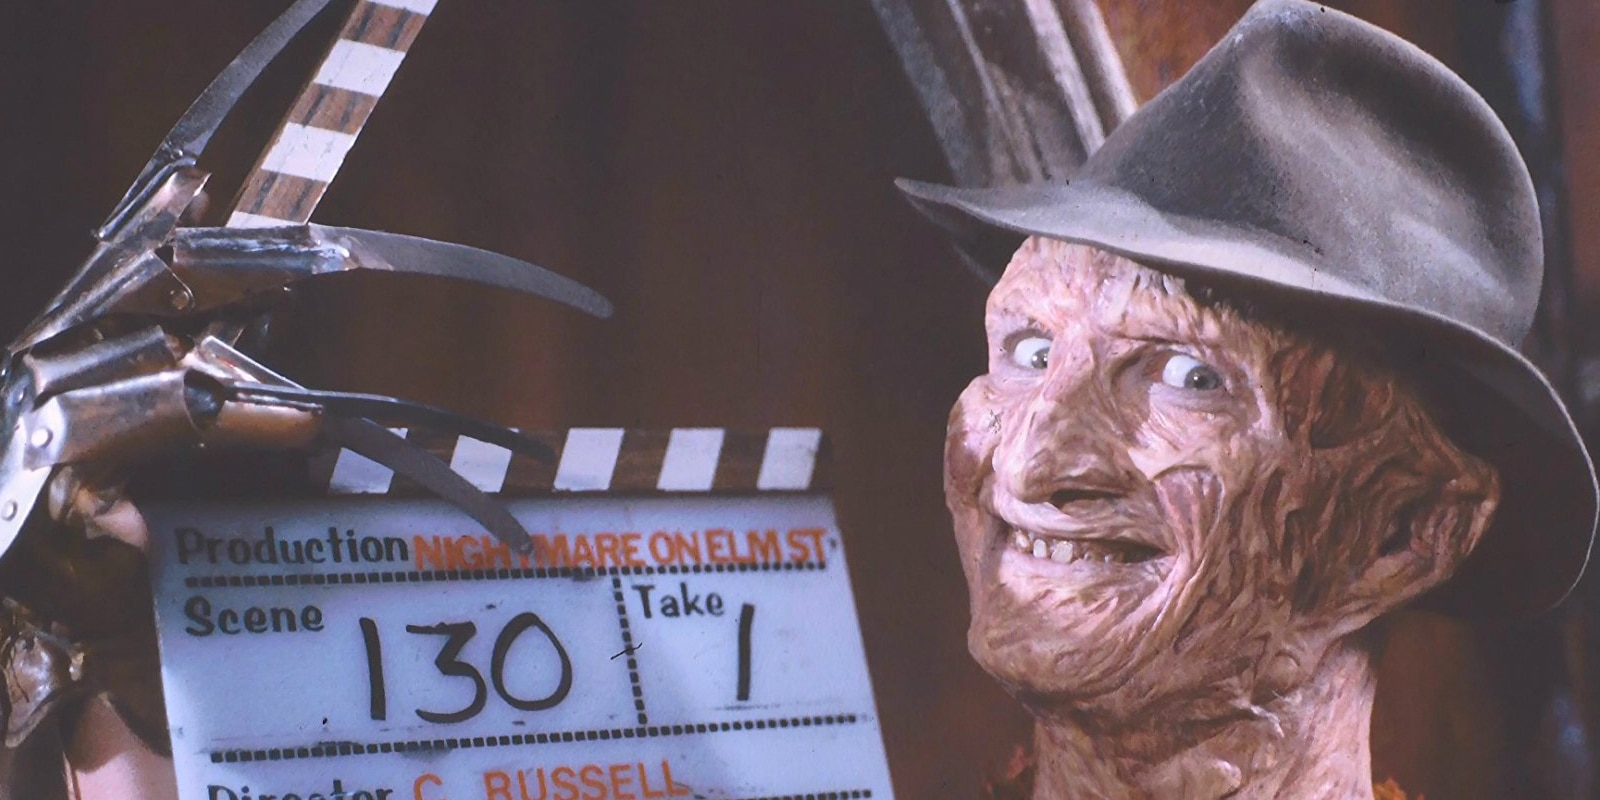 Nightmare 3 Dream Warriros 1 - Fearsome Fates: Top 10 Deaths from the Nightmare on Elm Street Franchise